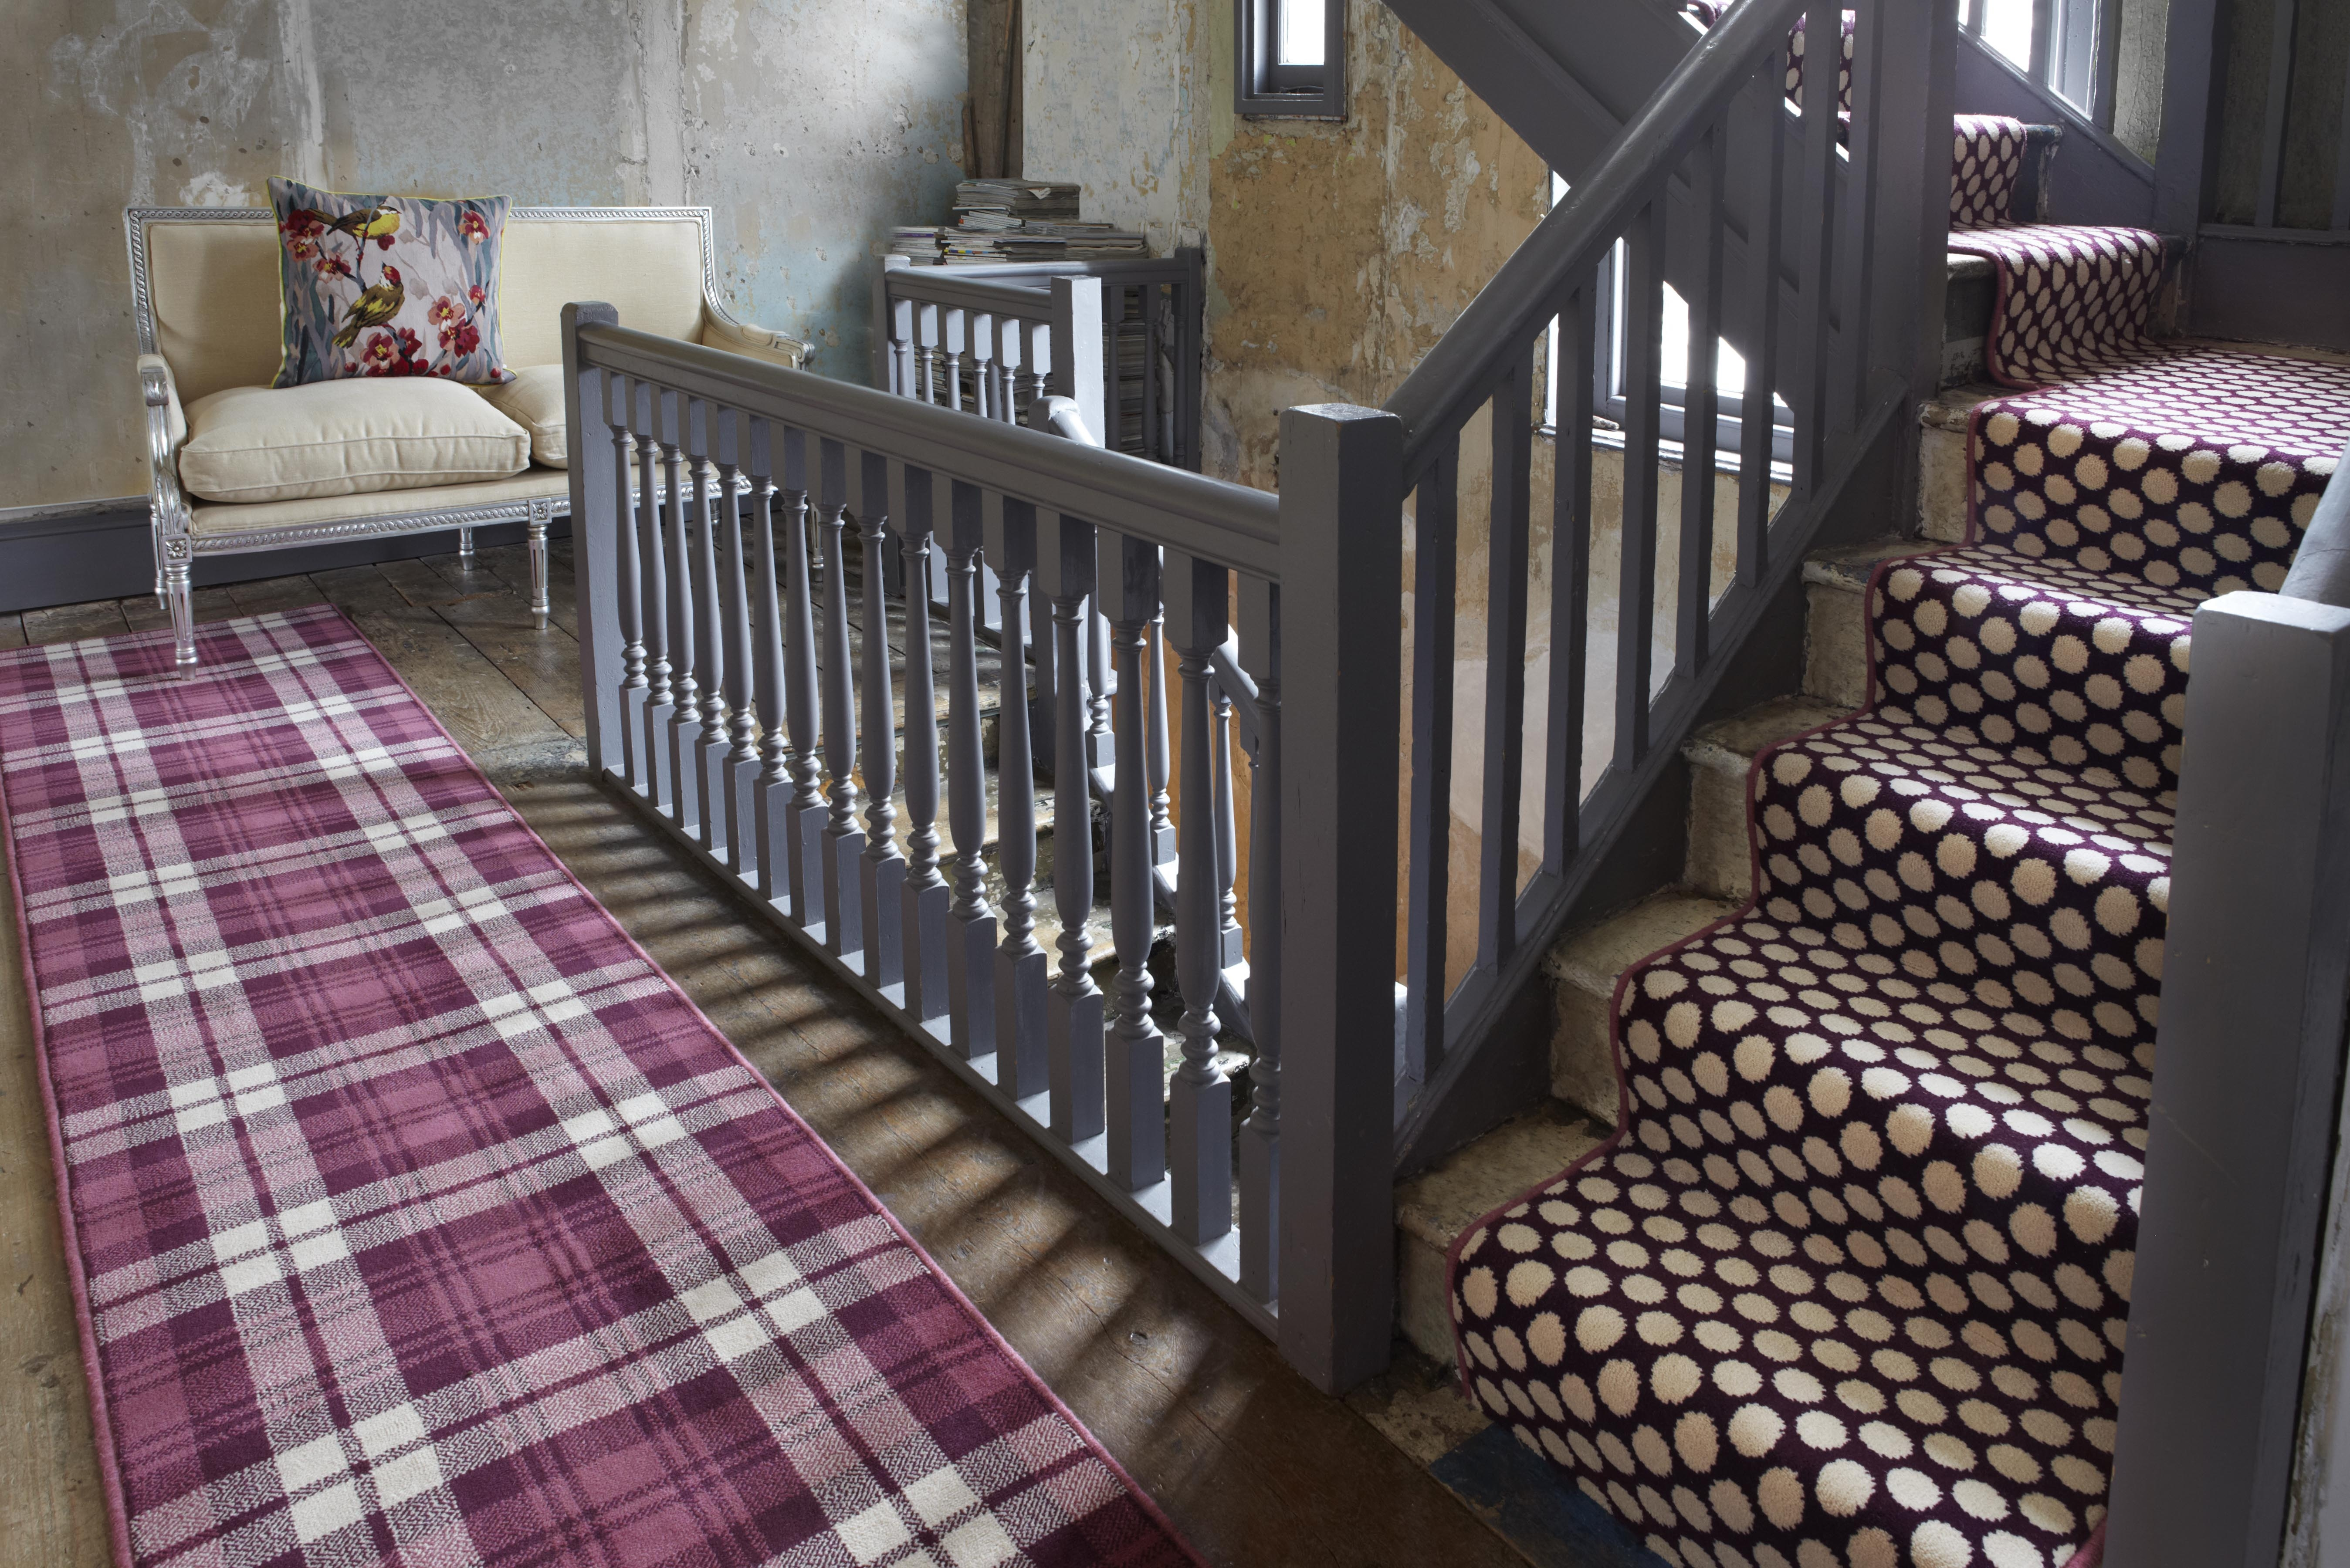 Home Milbank Carpets | Quirky Carpets For Stairs | Designed | Statement | Popular | Flower Patterned | Flowery